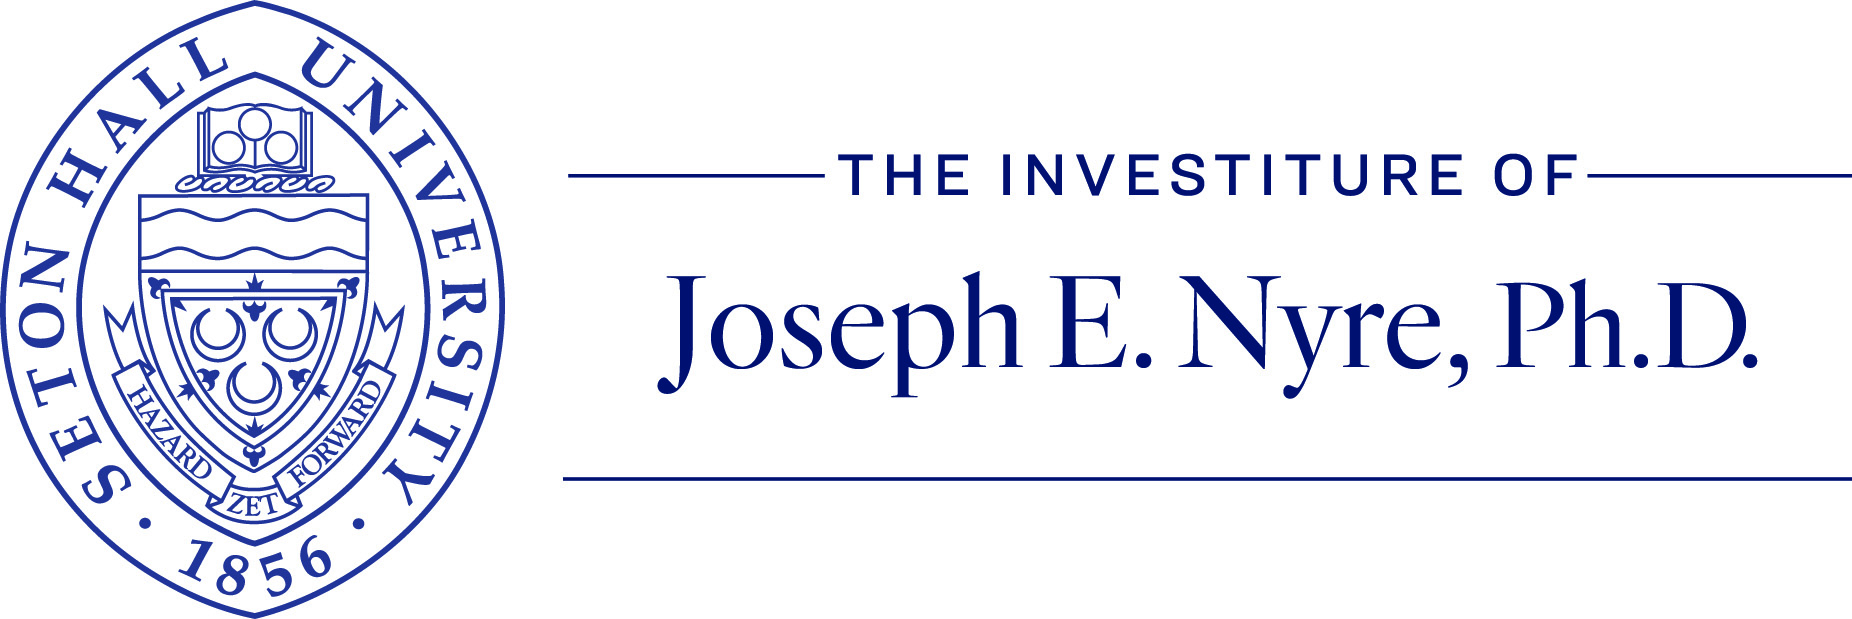 """Presidential Seal and text """"The Investiture of Joseph E. Nyre, Ph.D."""